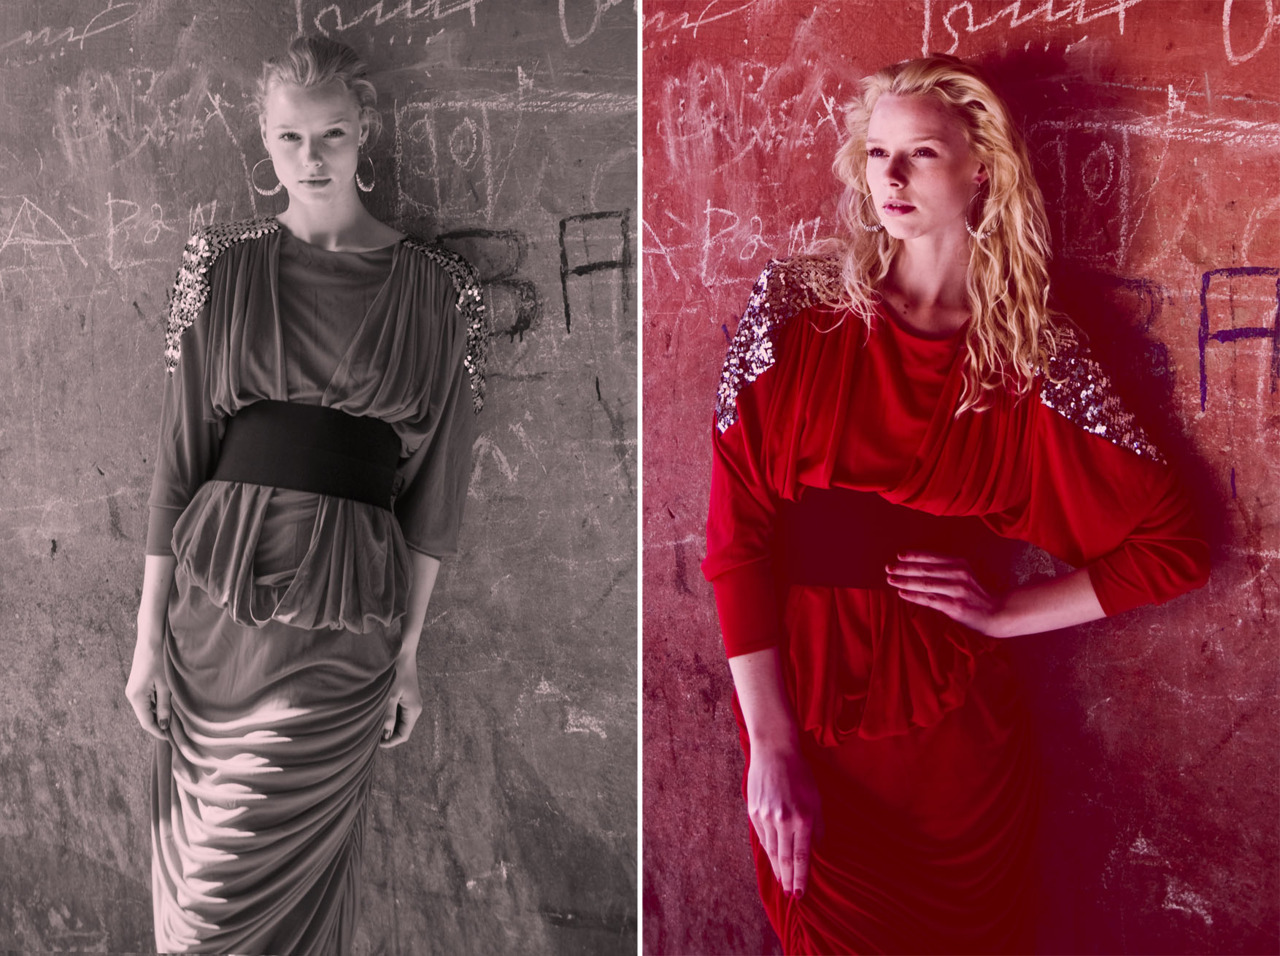 #mixtapes#   Fashion editorial in marrakech with the stunning Julie Bruteset Henning.